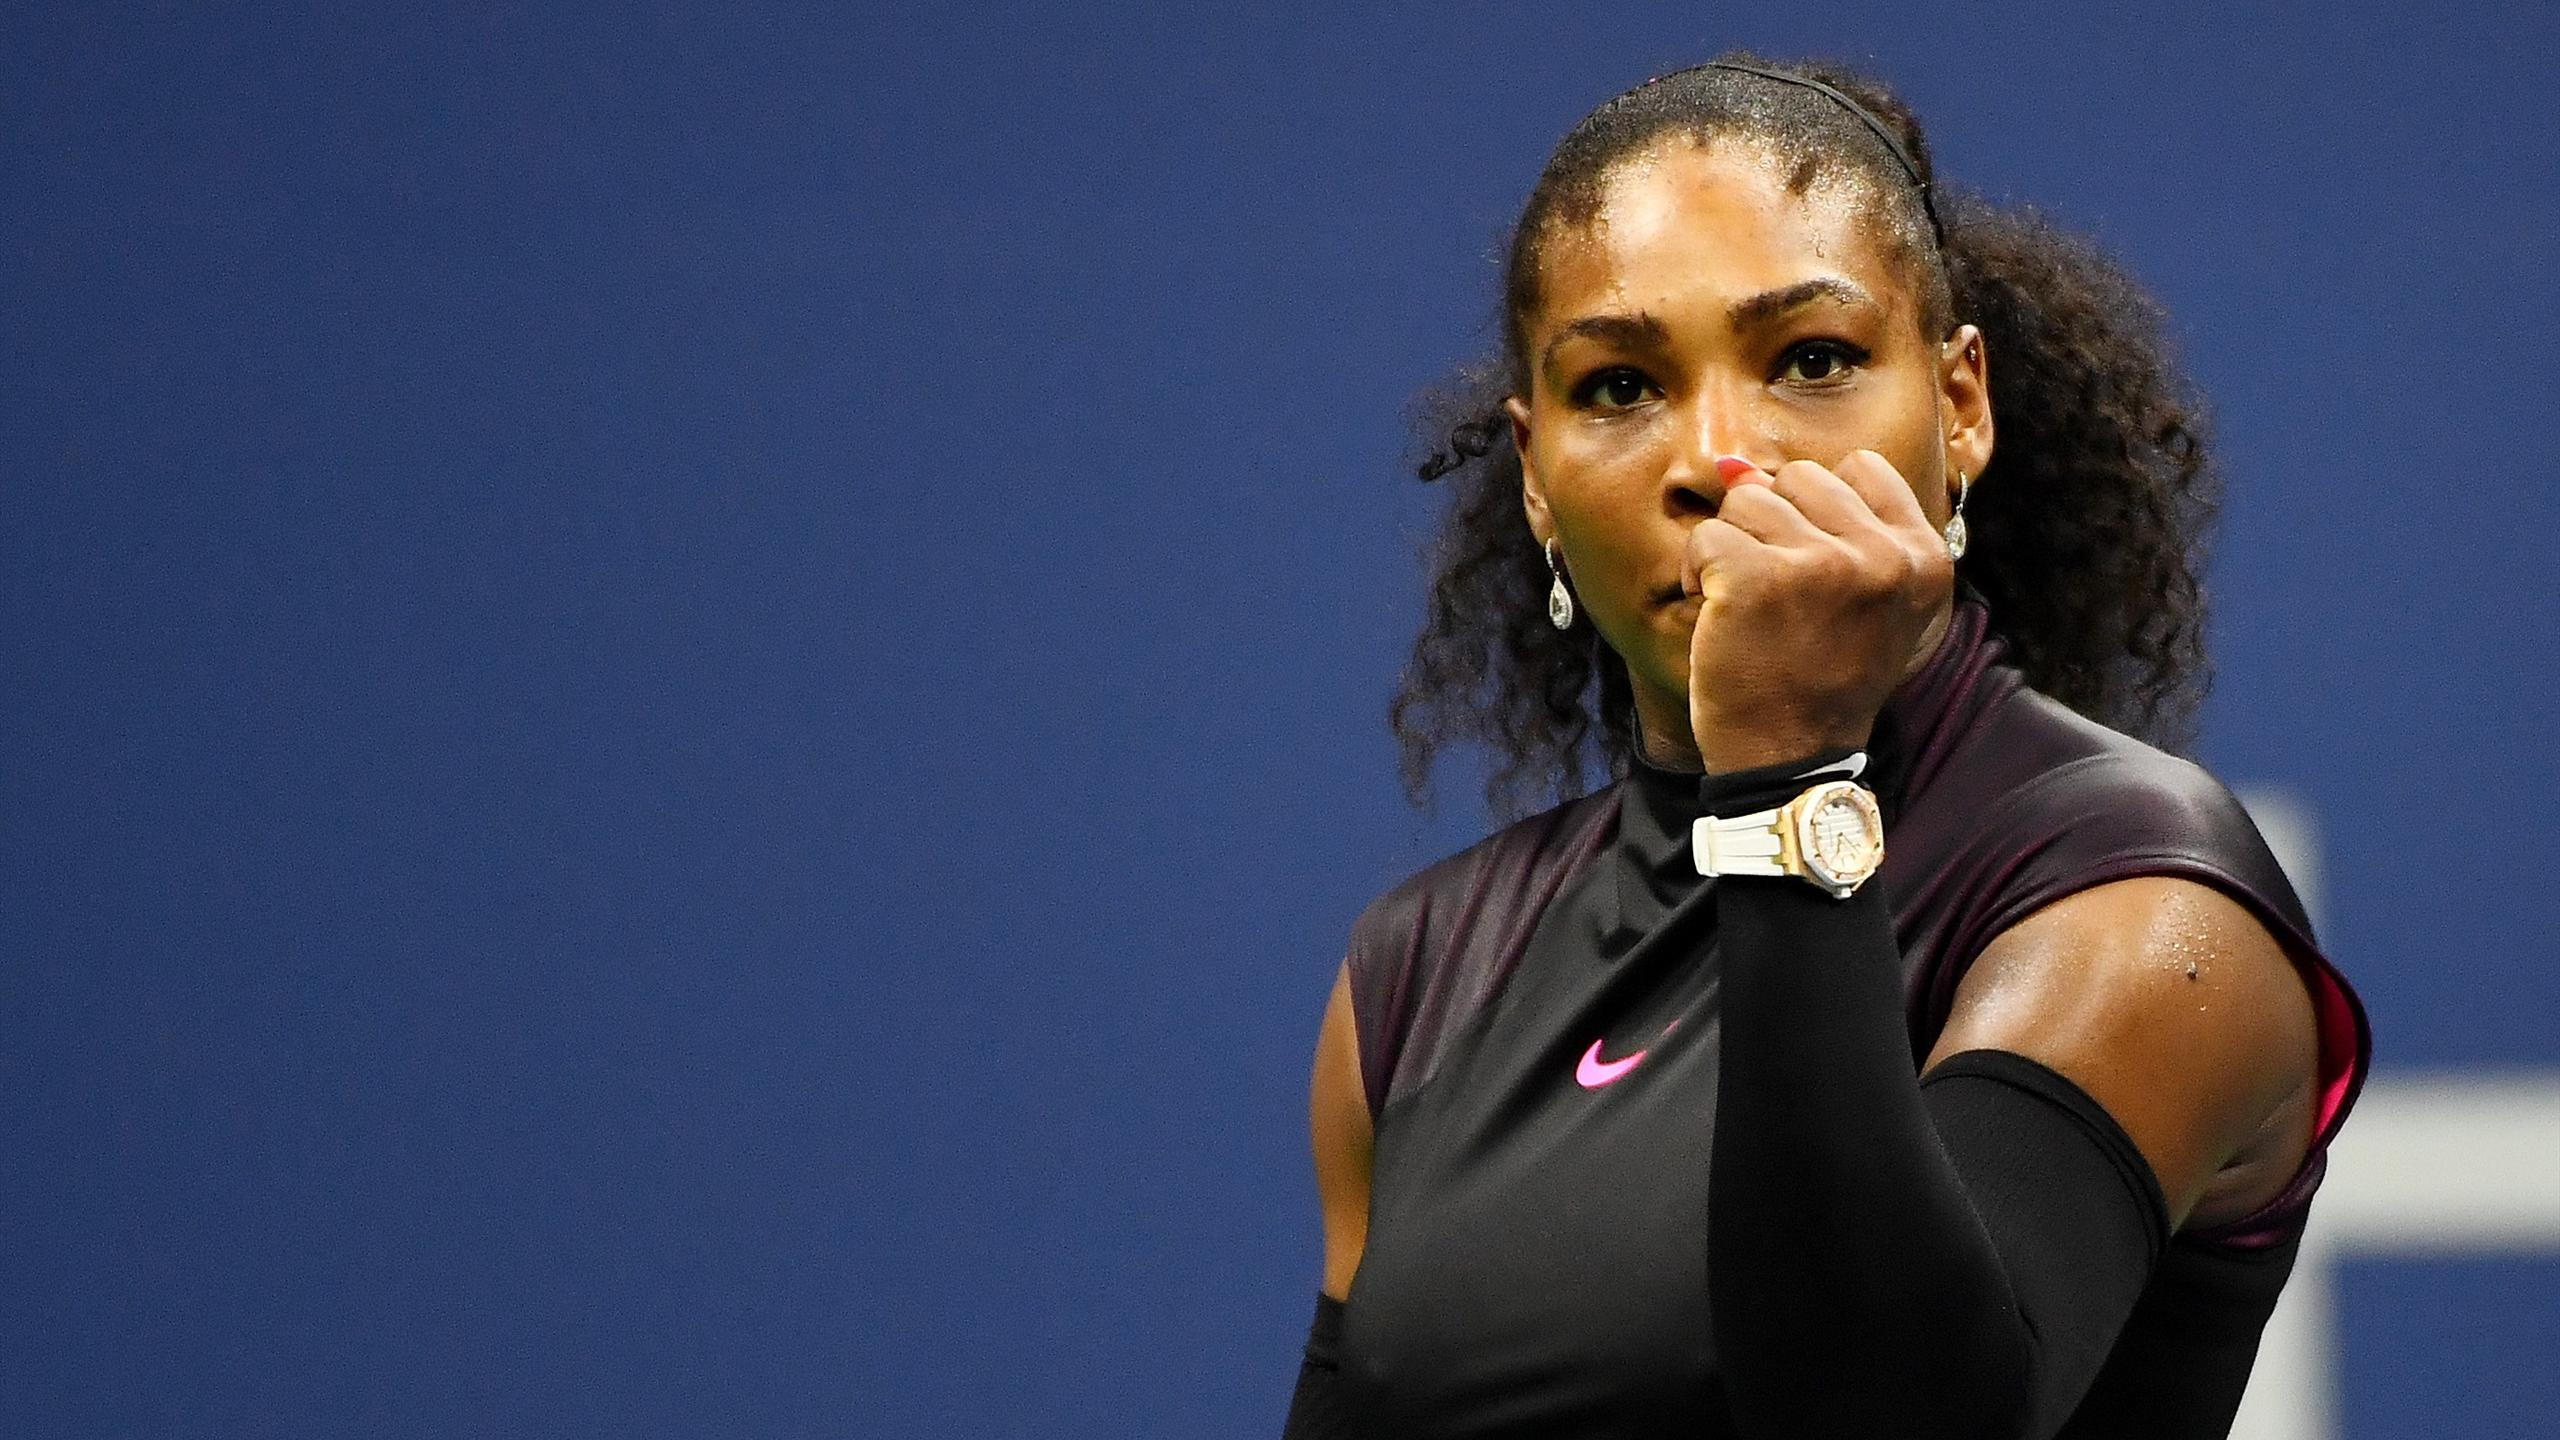 Serena Williams of the United States celebrates defeating Simona Halep